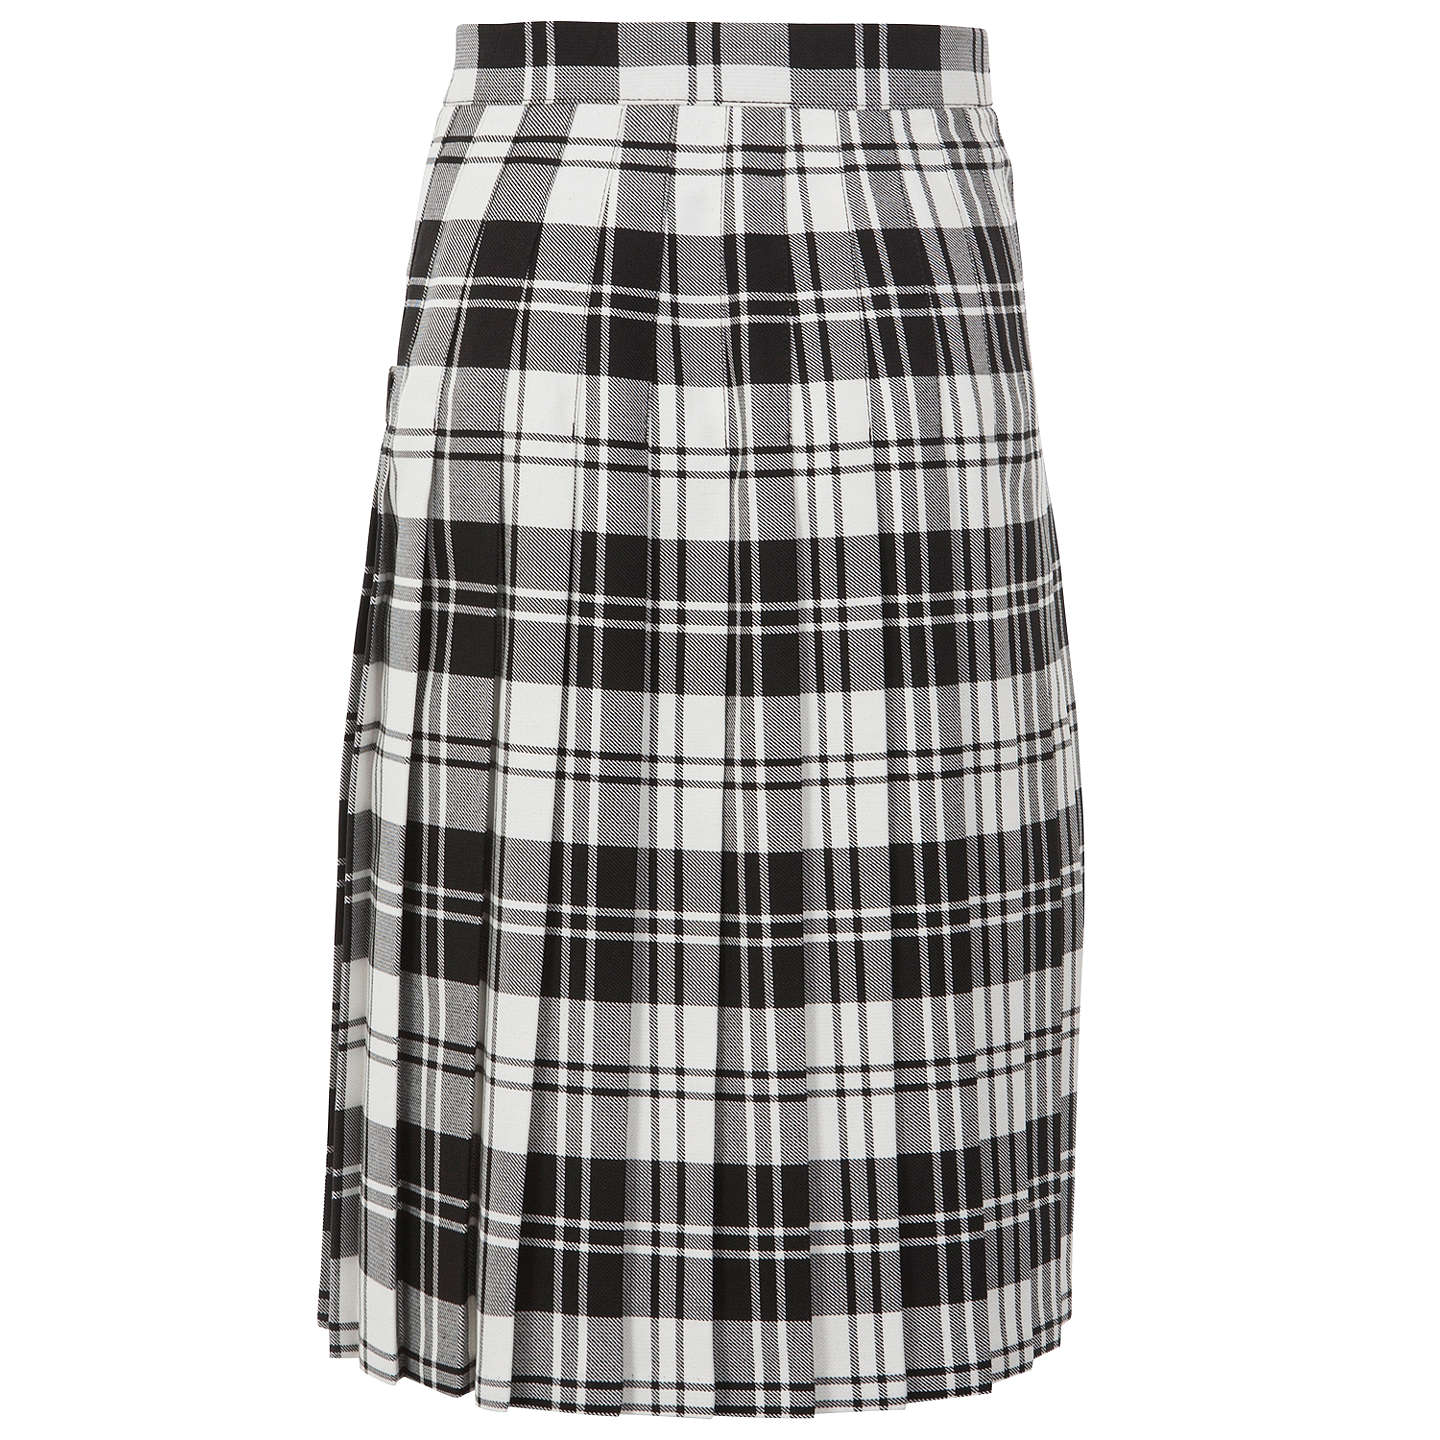 "BuyHoly Family Catholic School and Sixth Form Kilt, Black/White, Waist 22"", Length 22"" Online at johnlewis.com"